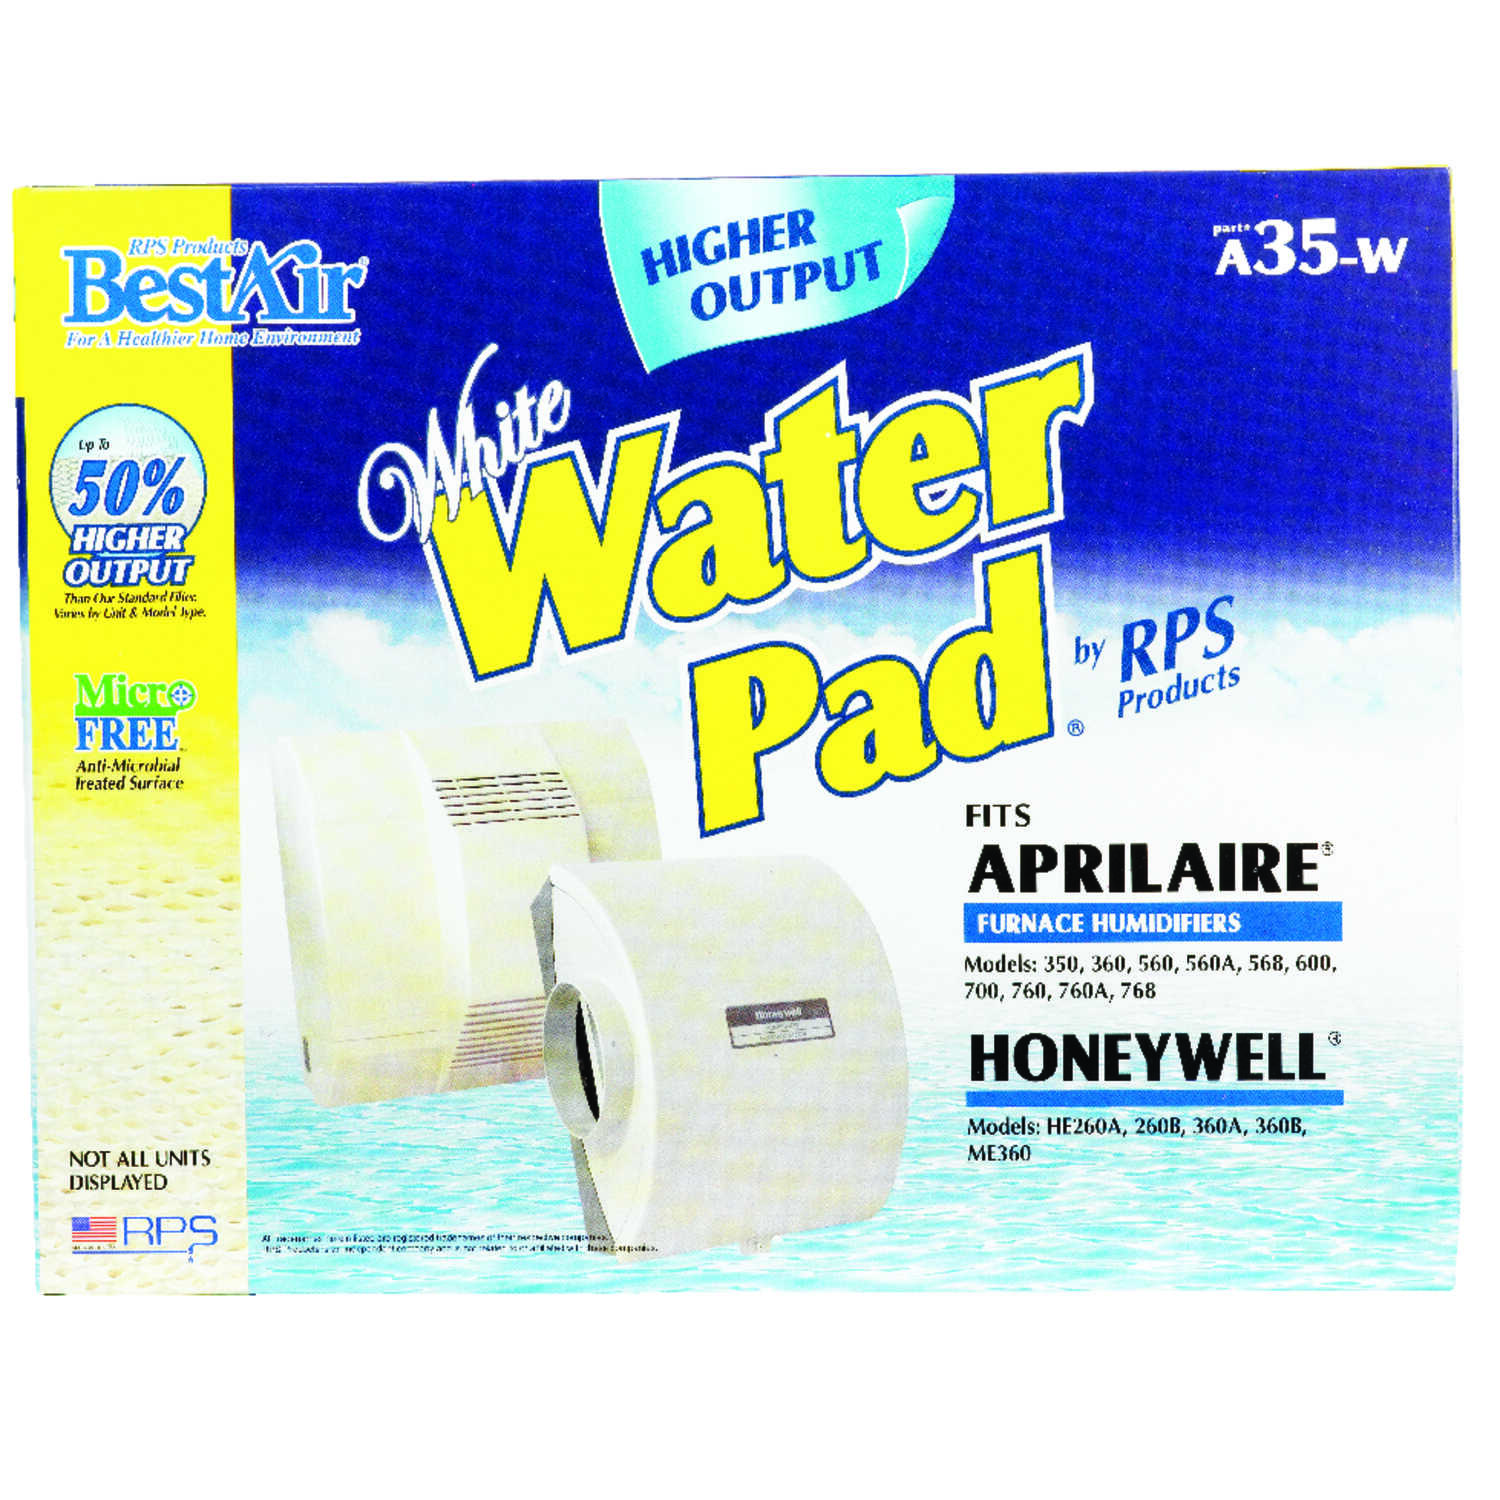 BestAir  A35-W  Replacement Water Pad  For Specific Aprilaire and Honeywell Humidifiers